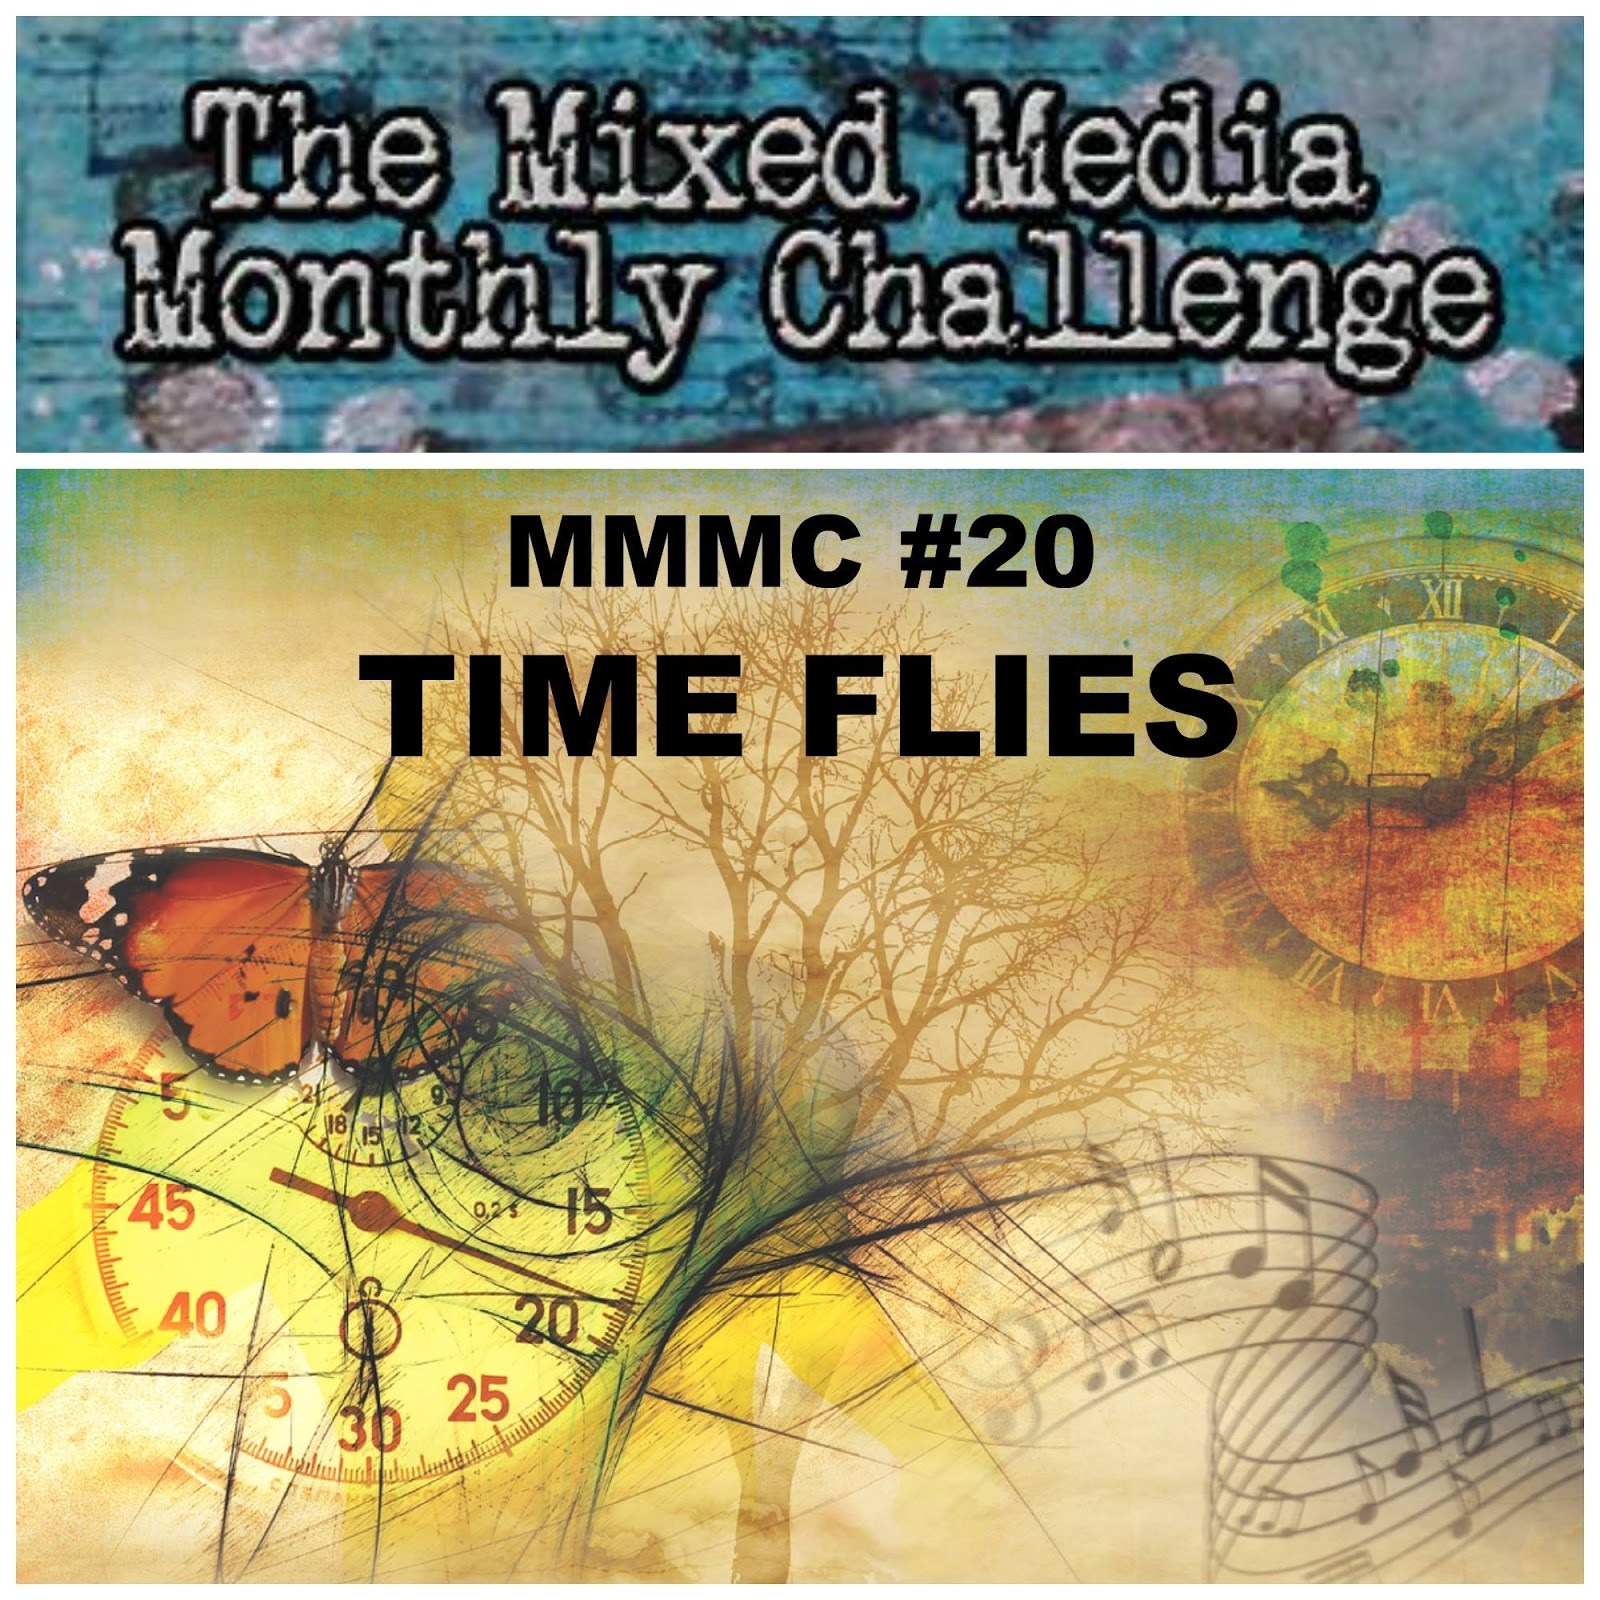 http://mixedmediamc.blogspot.ie/2016/01/mixed-media-monthly-challenge-20-time.html